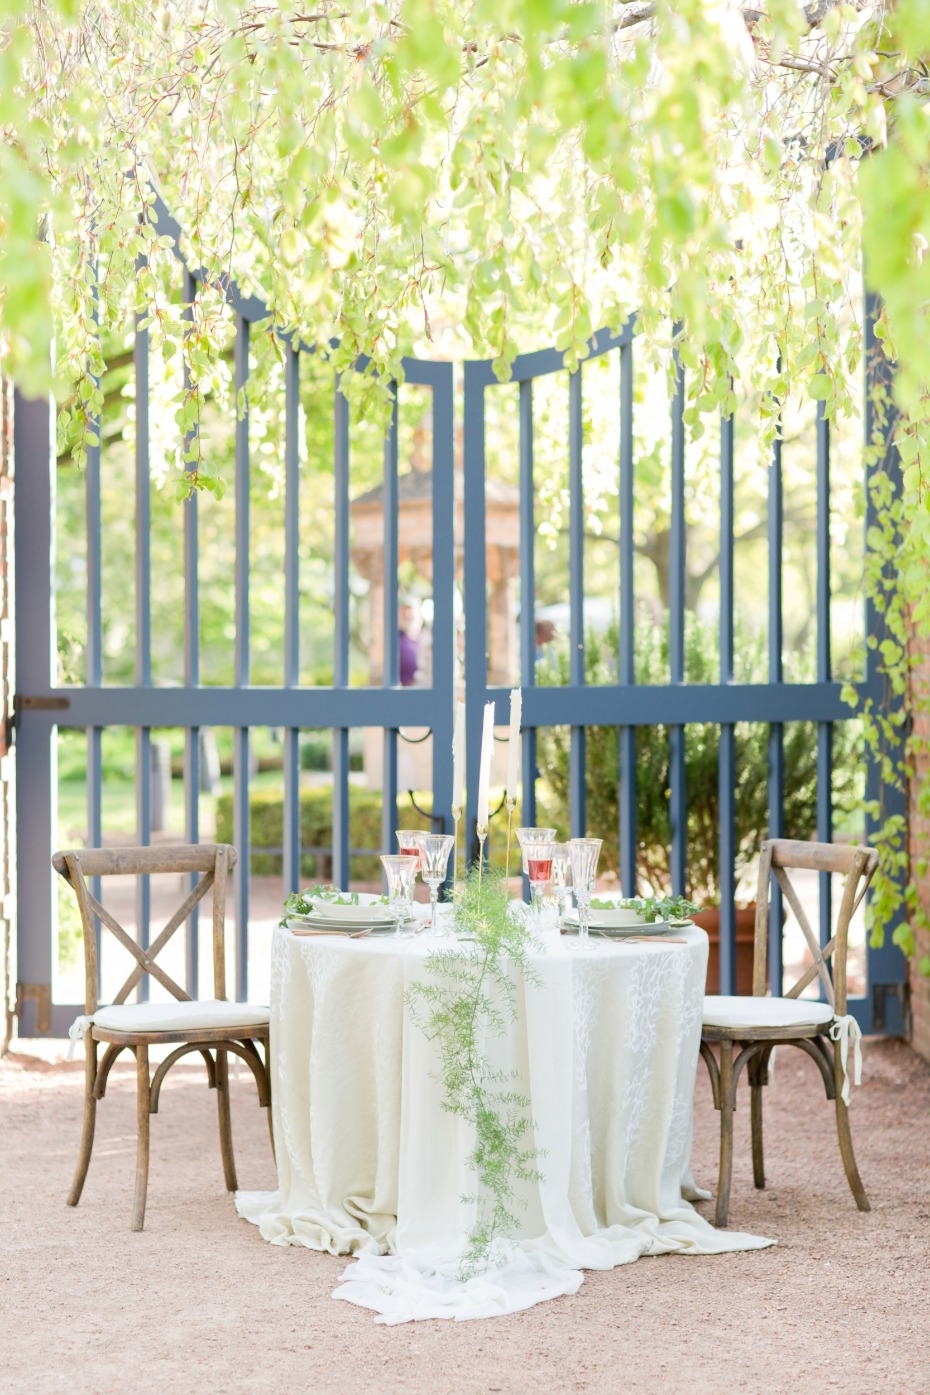 Sweetheart table in the garden